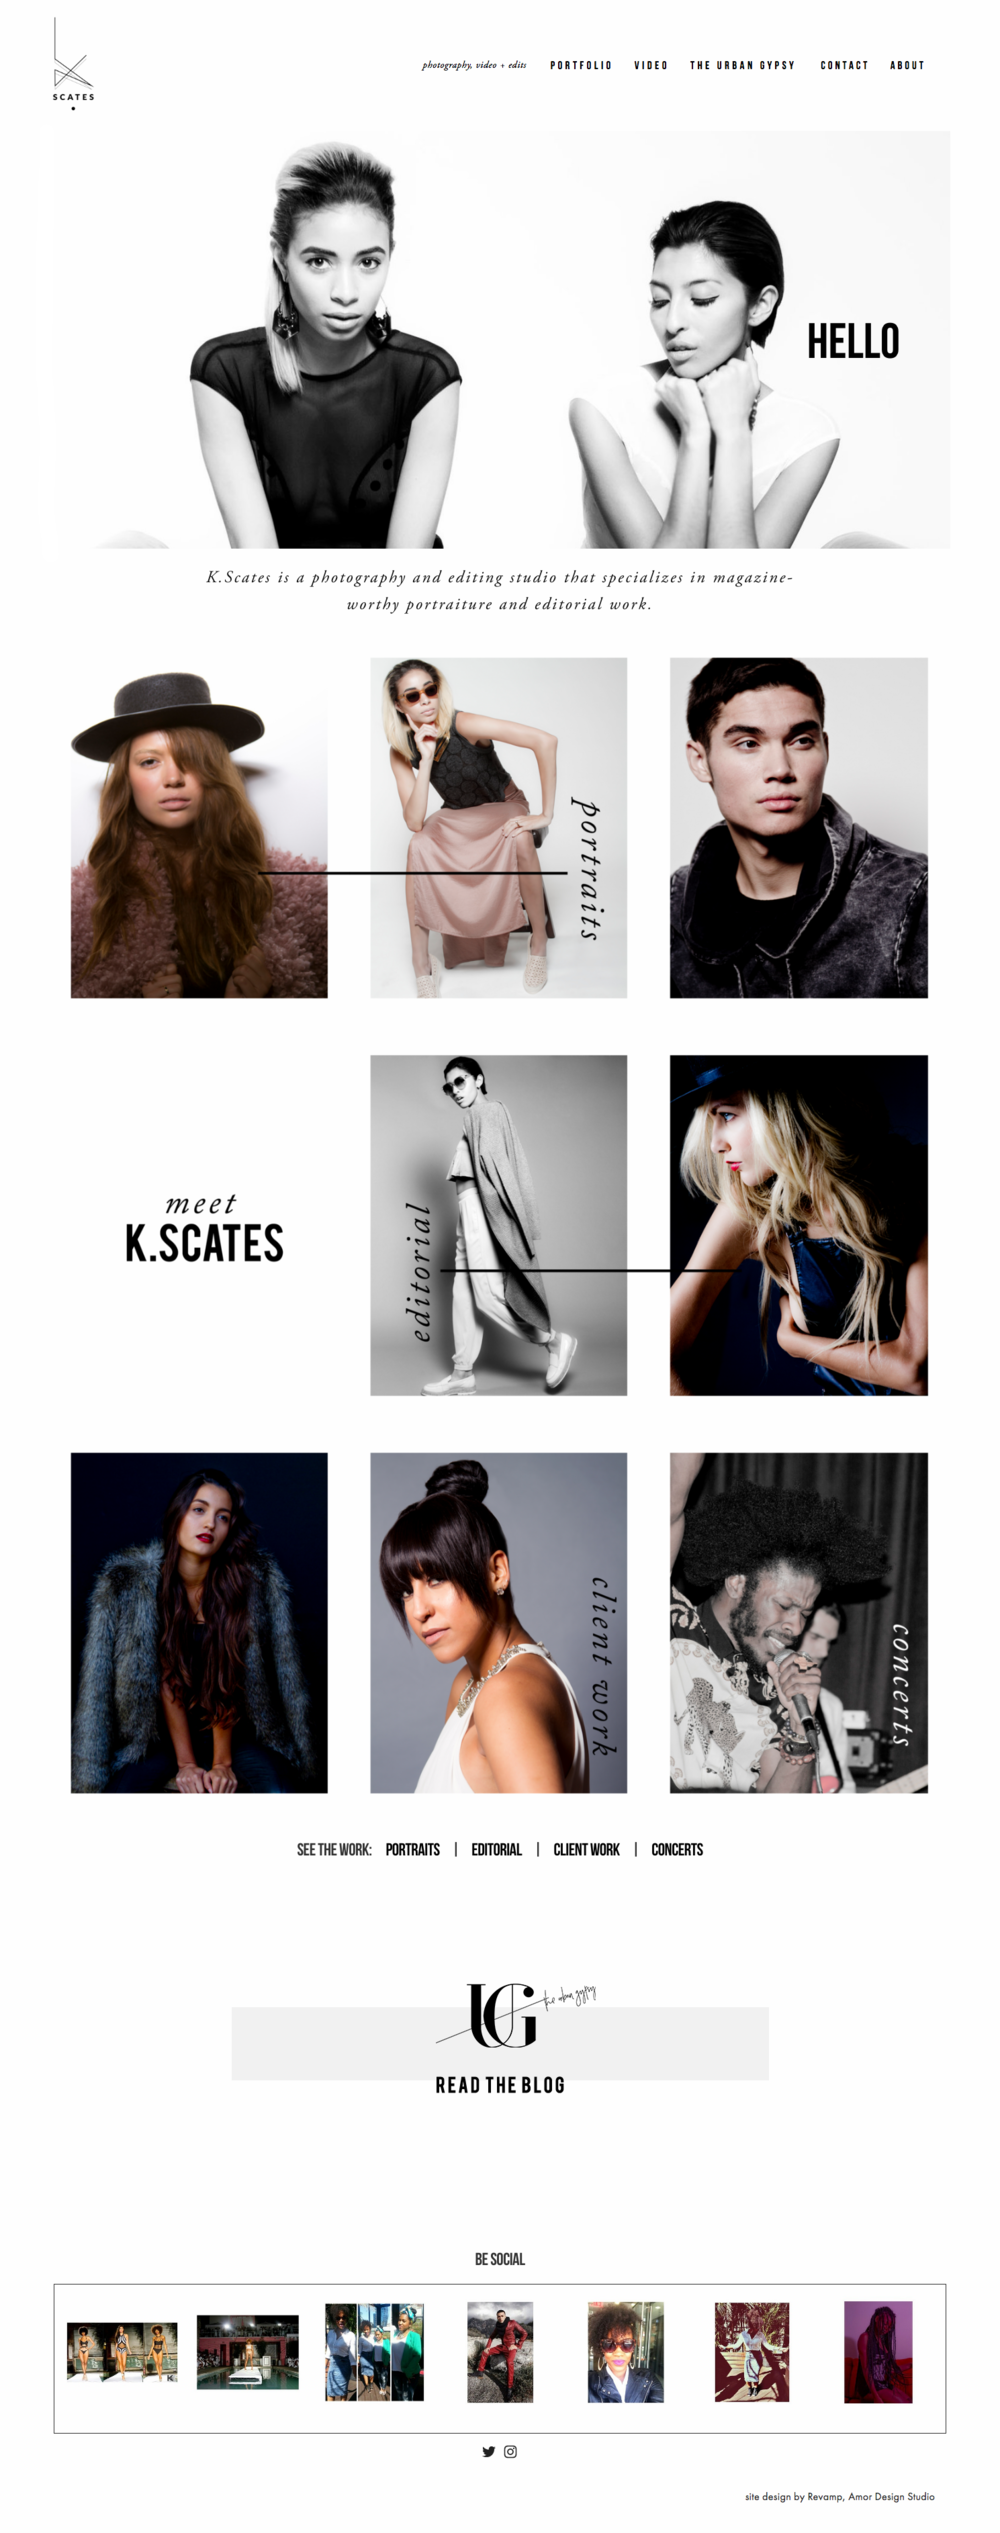 K Scates Photography, web portfolio design by Revamp, Amor Design Studio